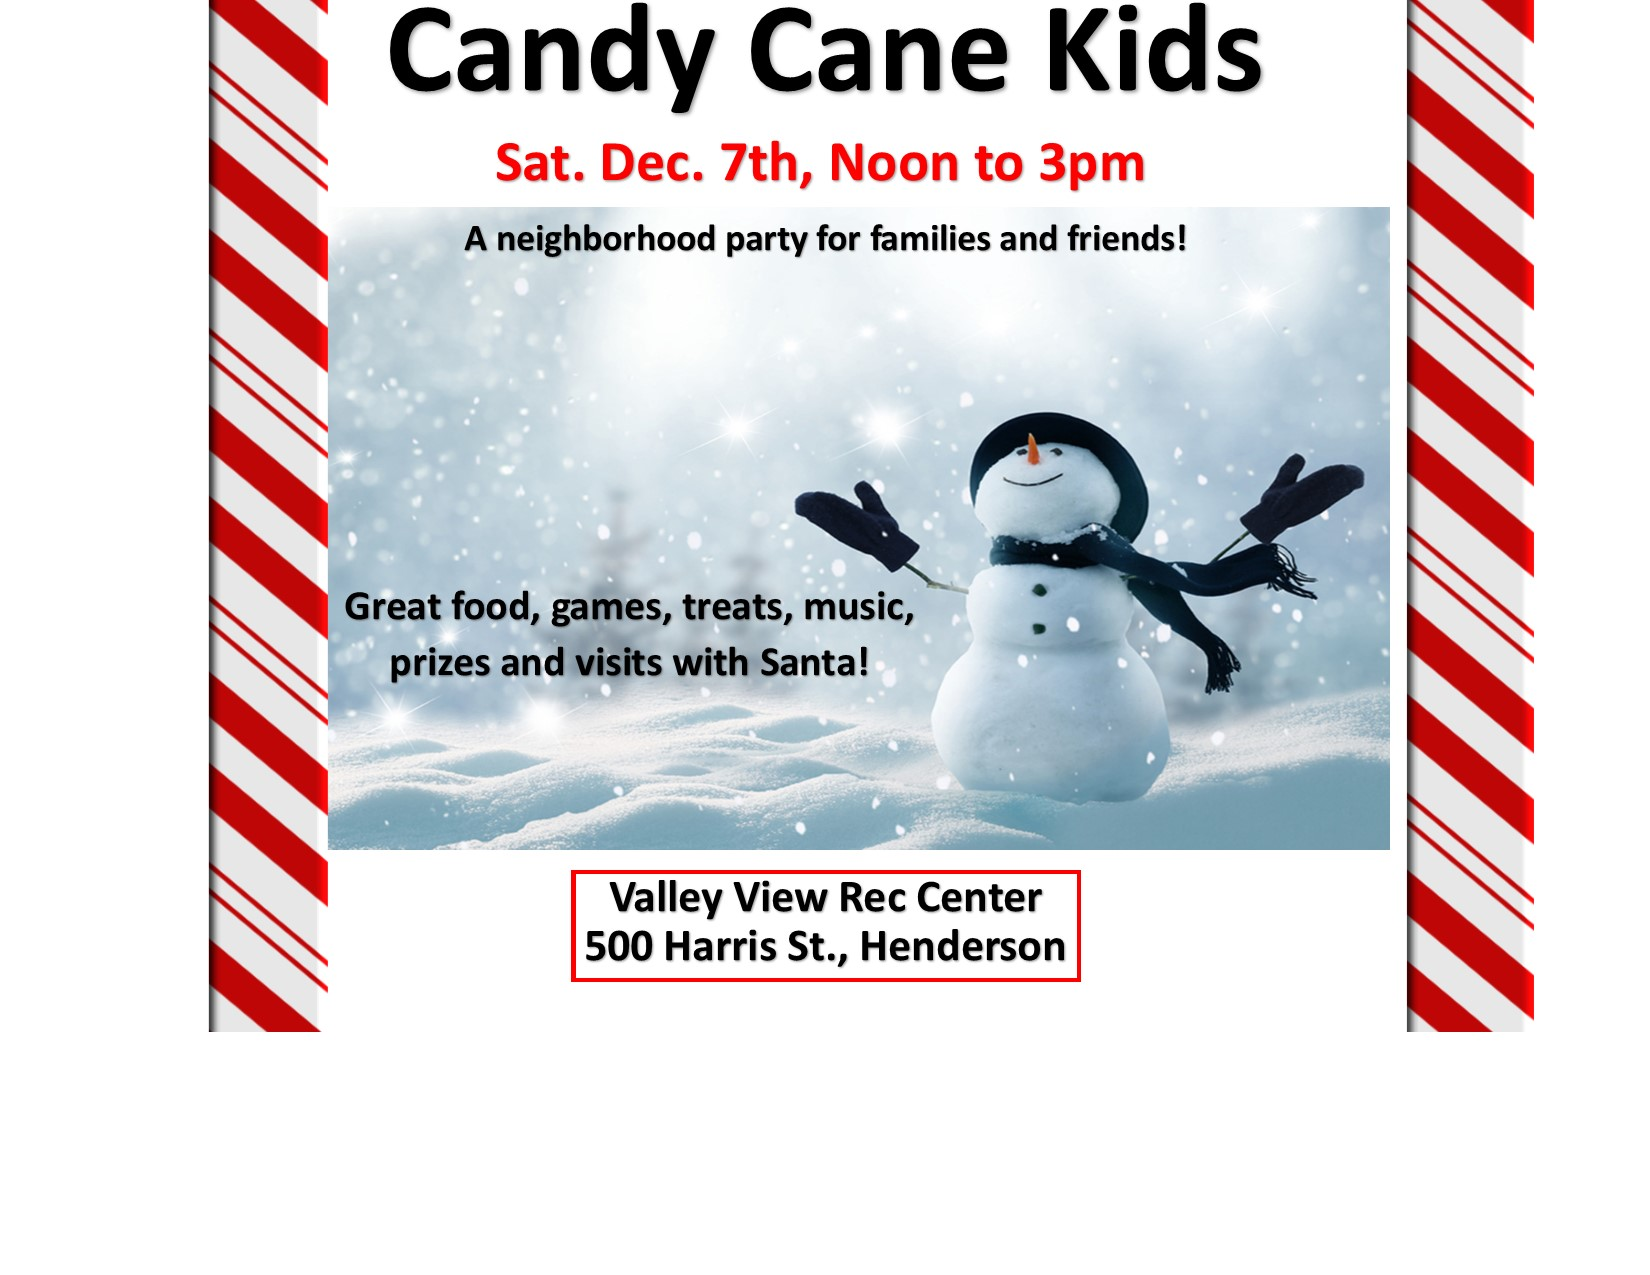 Candy Cane Kids 2019, Dec. 7th Noon to 3pm